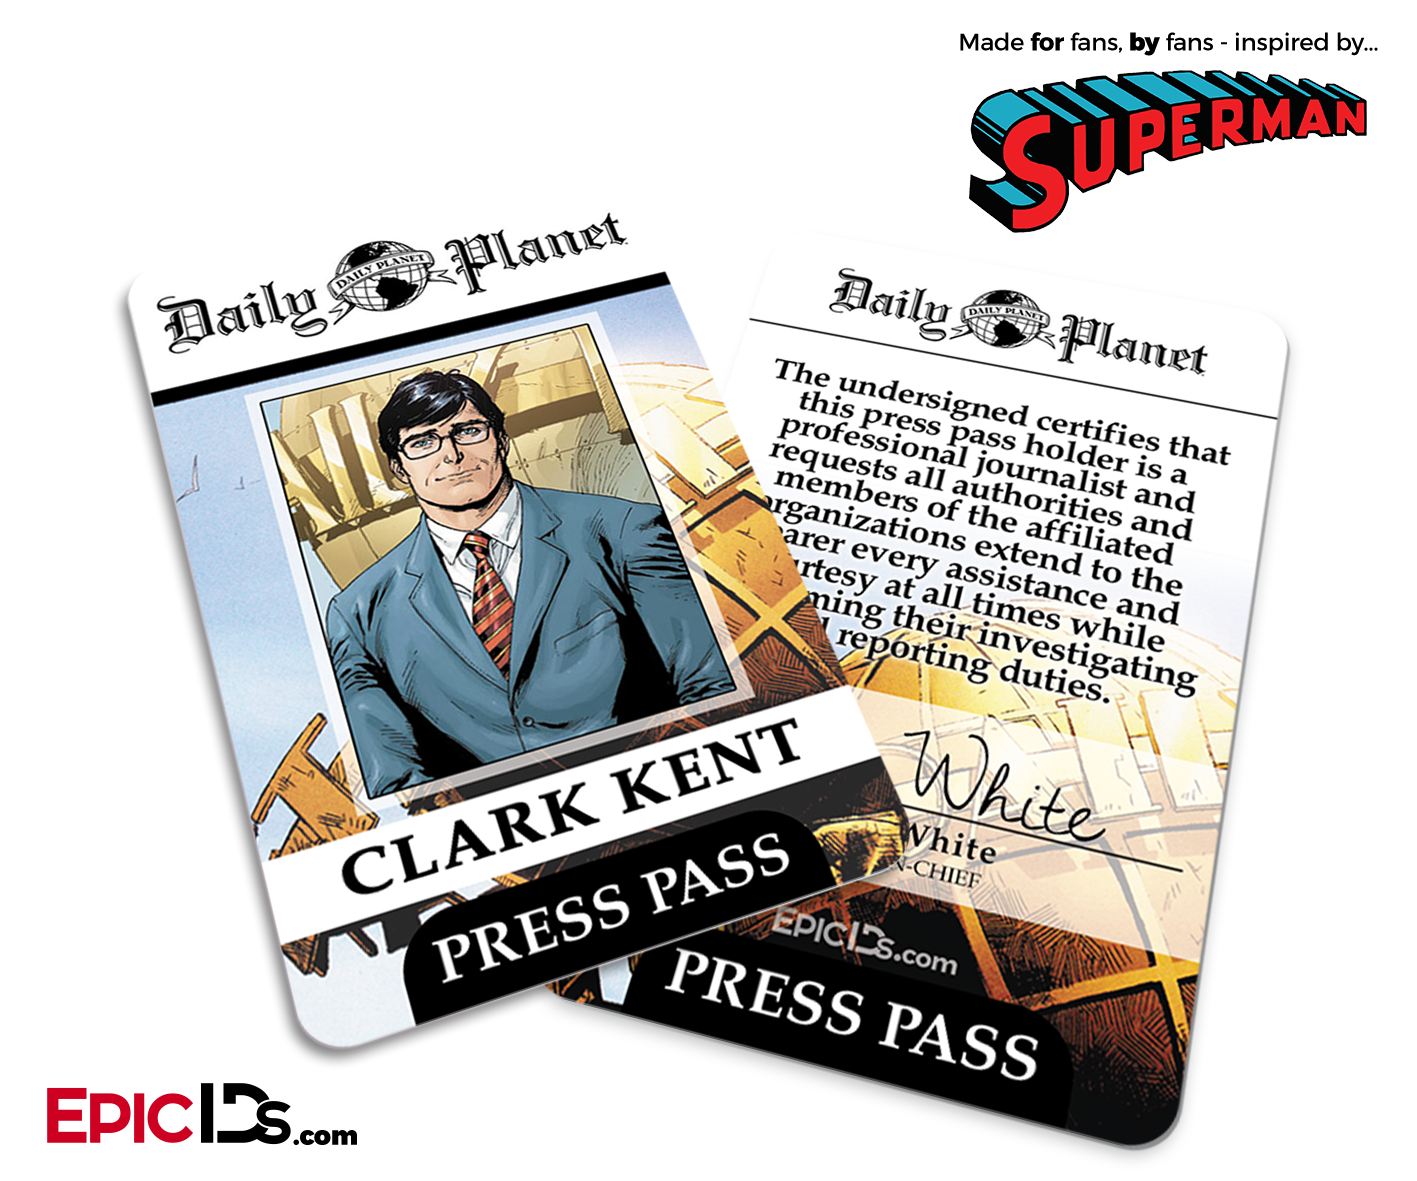 image about Lois Lane Press Pass Printable called Superman Clic Comedian Day-to-day Earth Push P Cosplay Identification Badge - Clark Kent